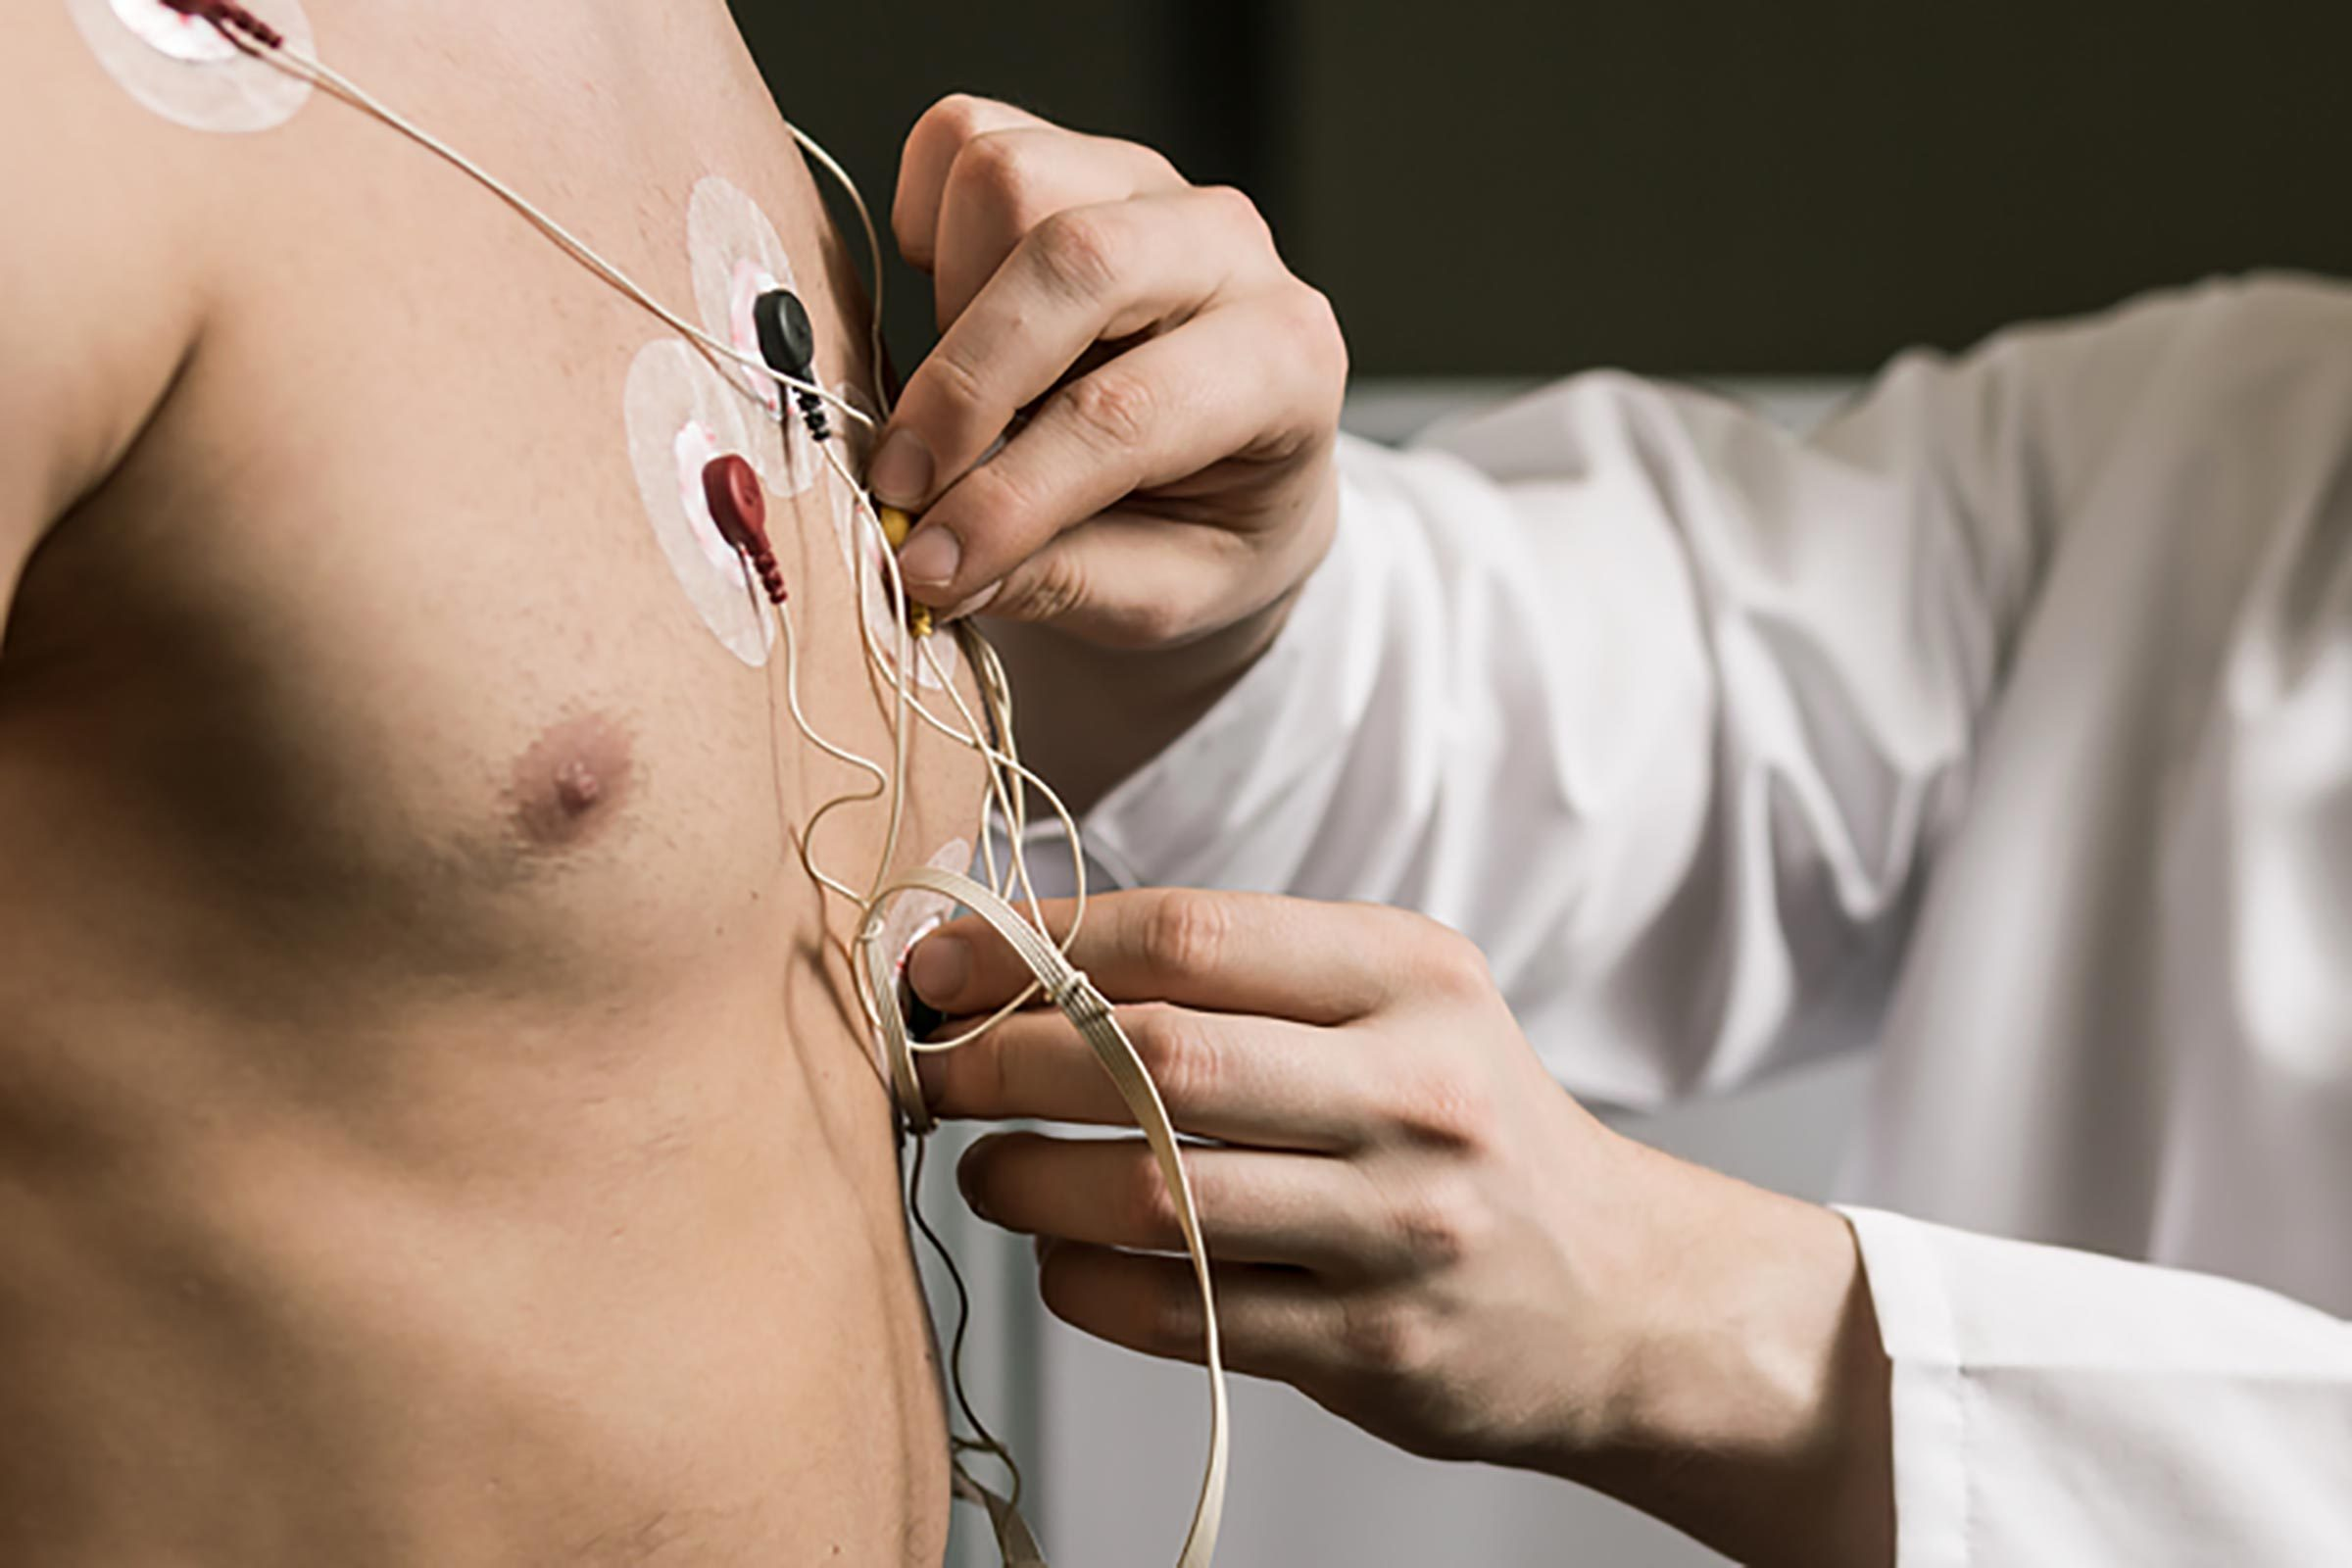 wires on chest for heart test